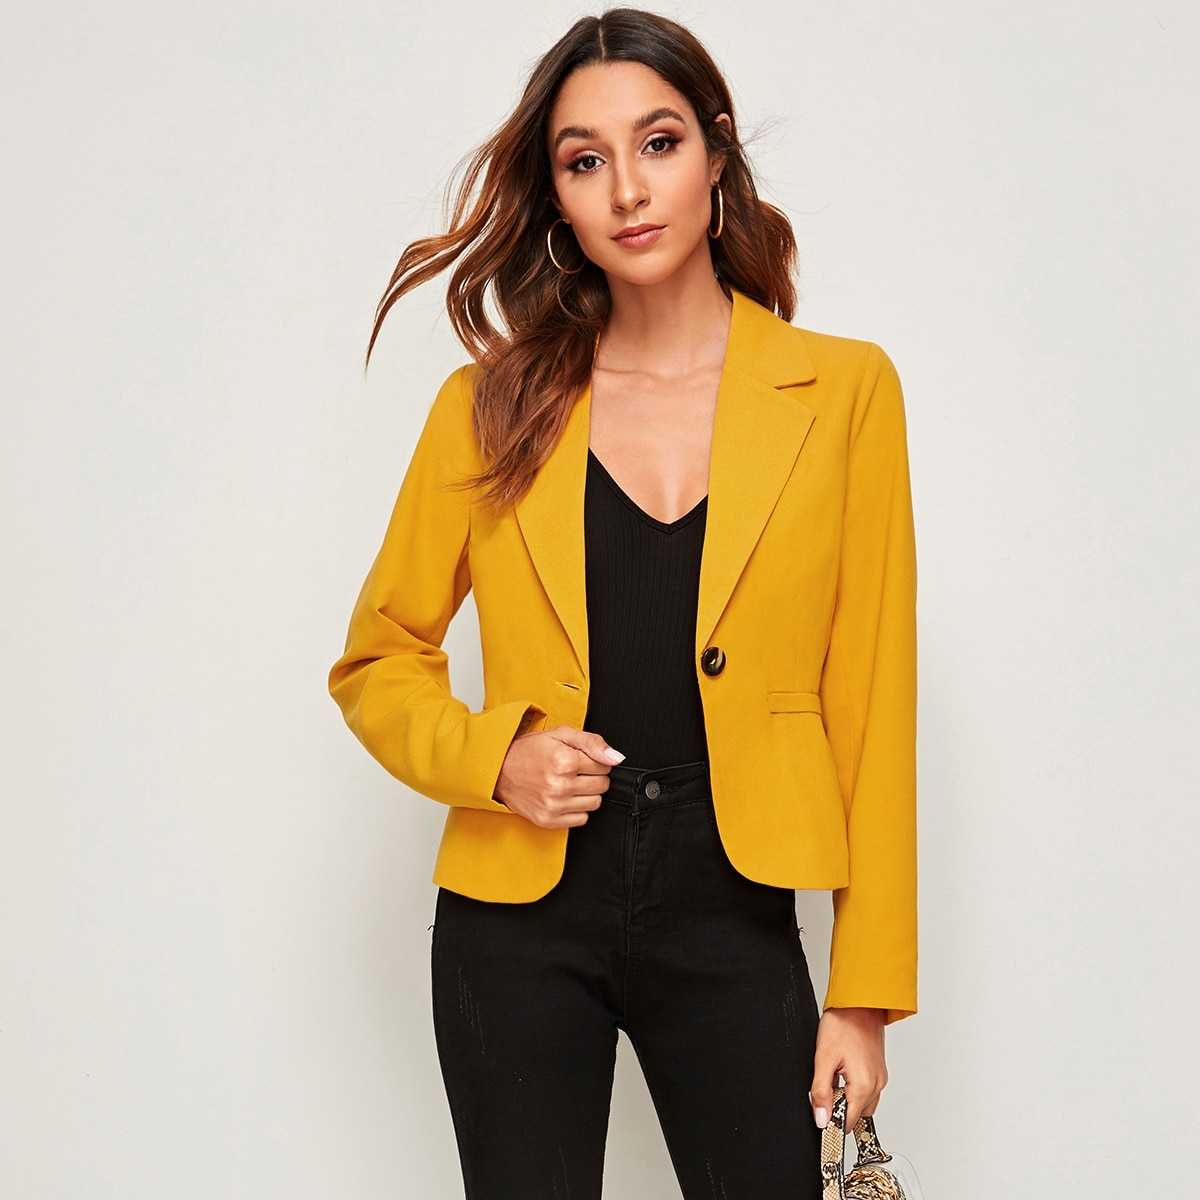 Solid Single Button Blazer in Yellow Bright by ROMWE on GOOFASH